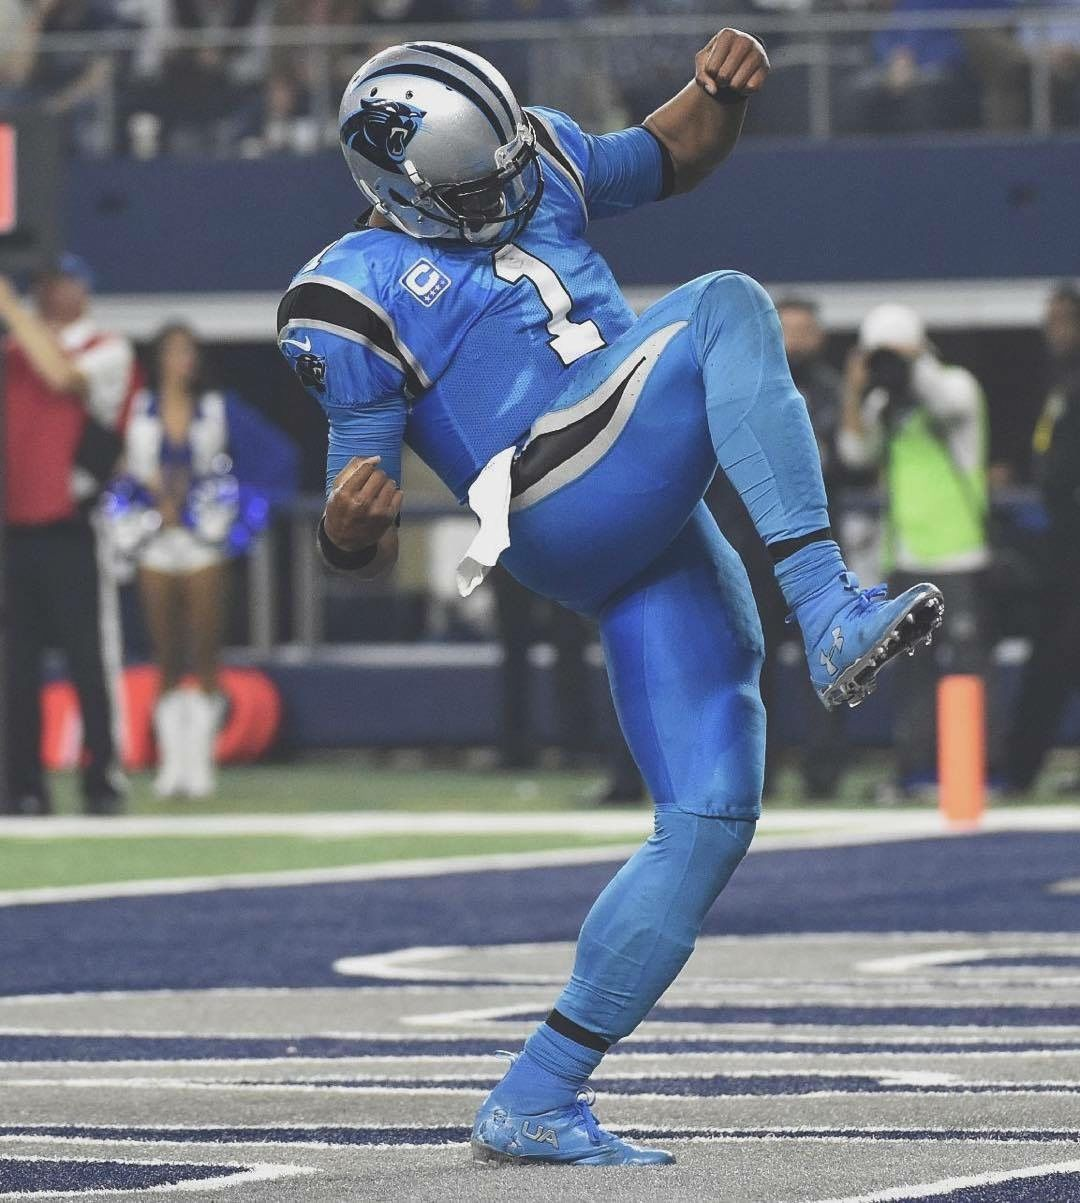 official photos 7fa0a fcf68 Dab on it Cam!!!! Digging the blue color rush btw ...